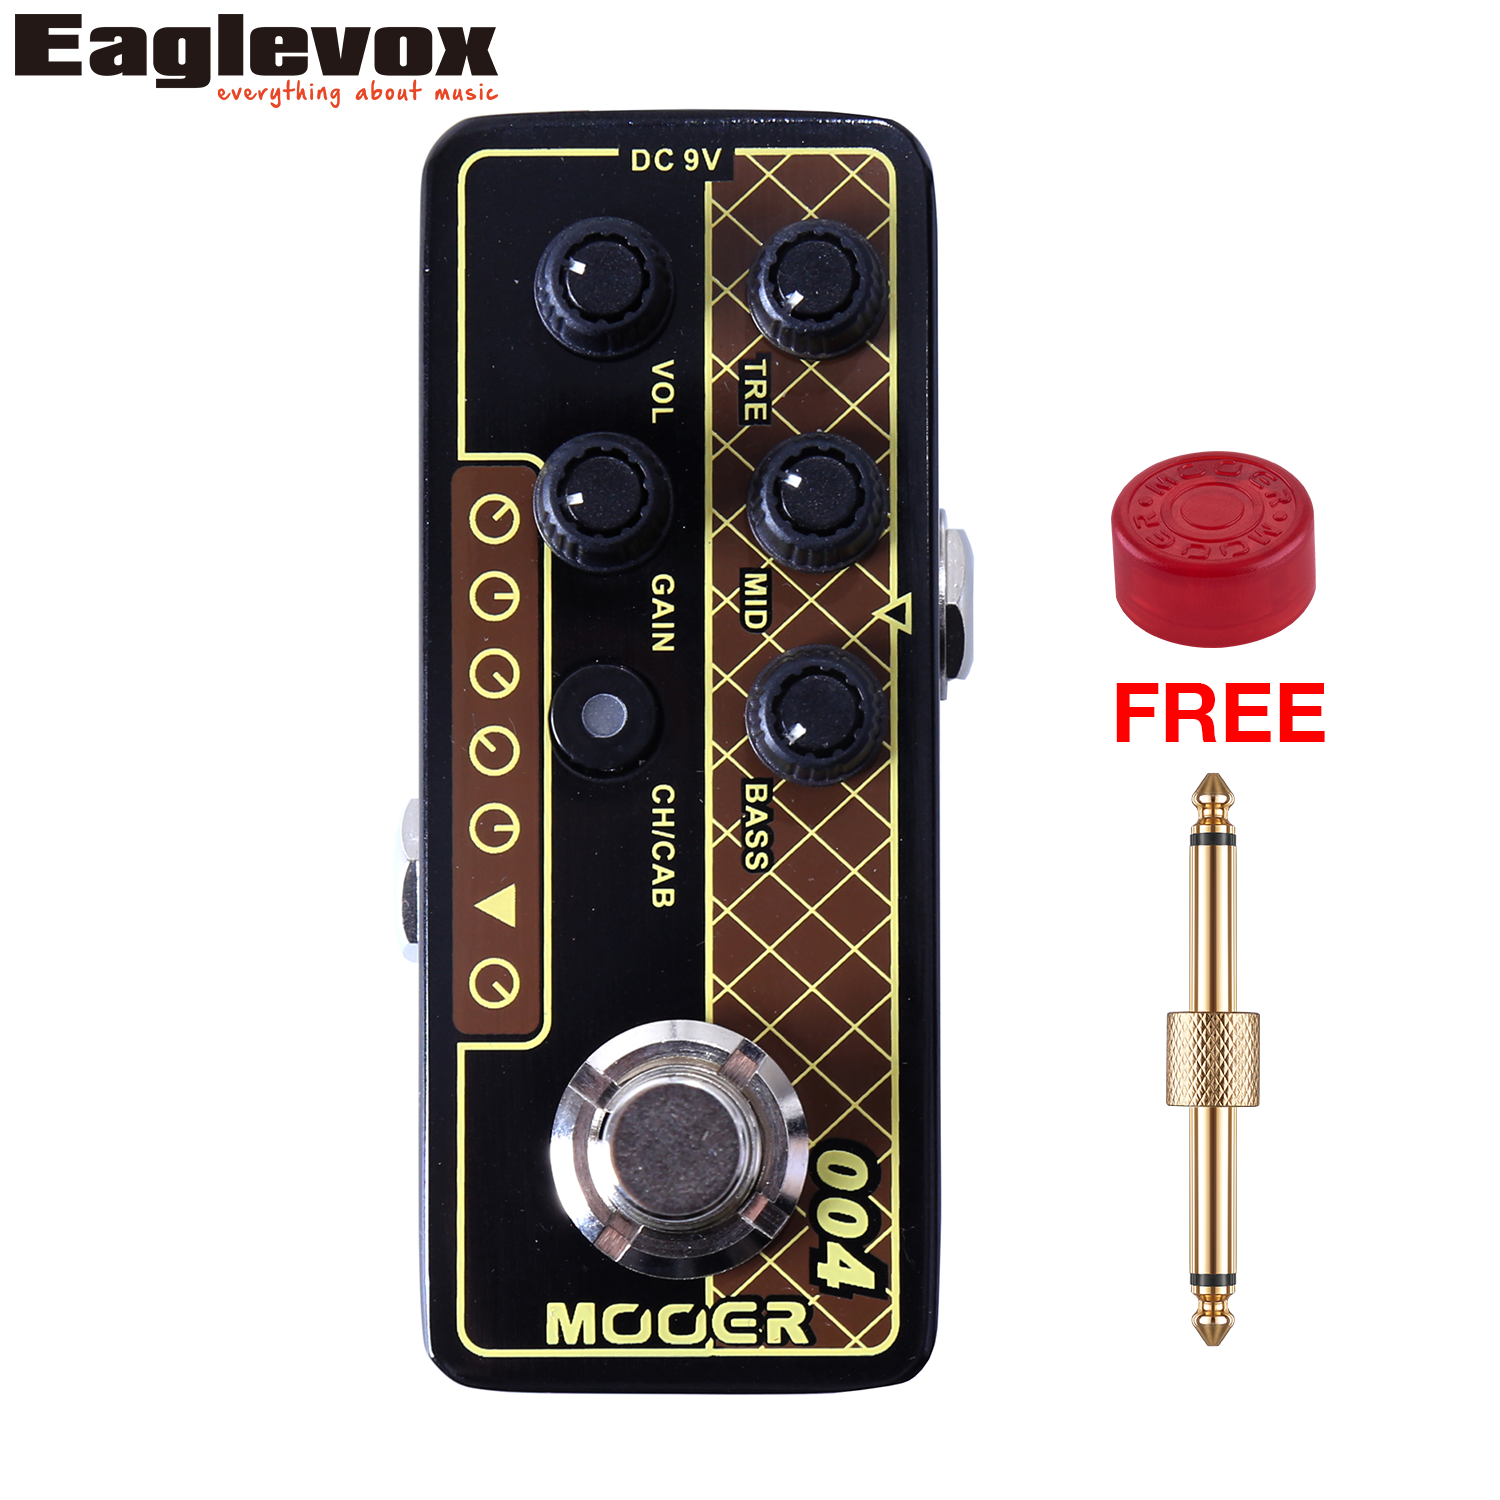 Mooer 004 Day Tripper Micro Preamp Dual Channel 3 band EQ Gain Volume Controls Guitar Effect Pedal with Free Gift professional hand tool wire tripper long float nose nanual wire tripper hot sale wire tripper free shipping